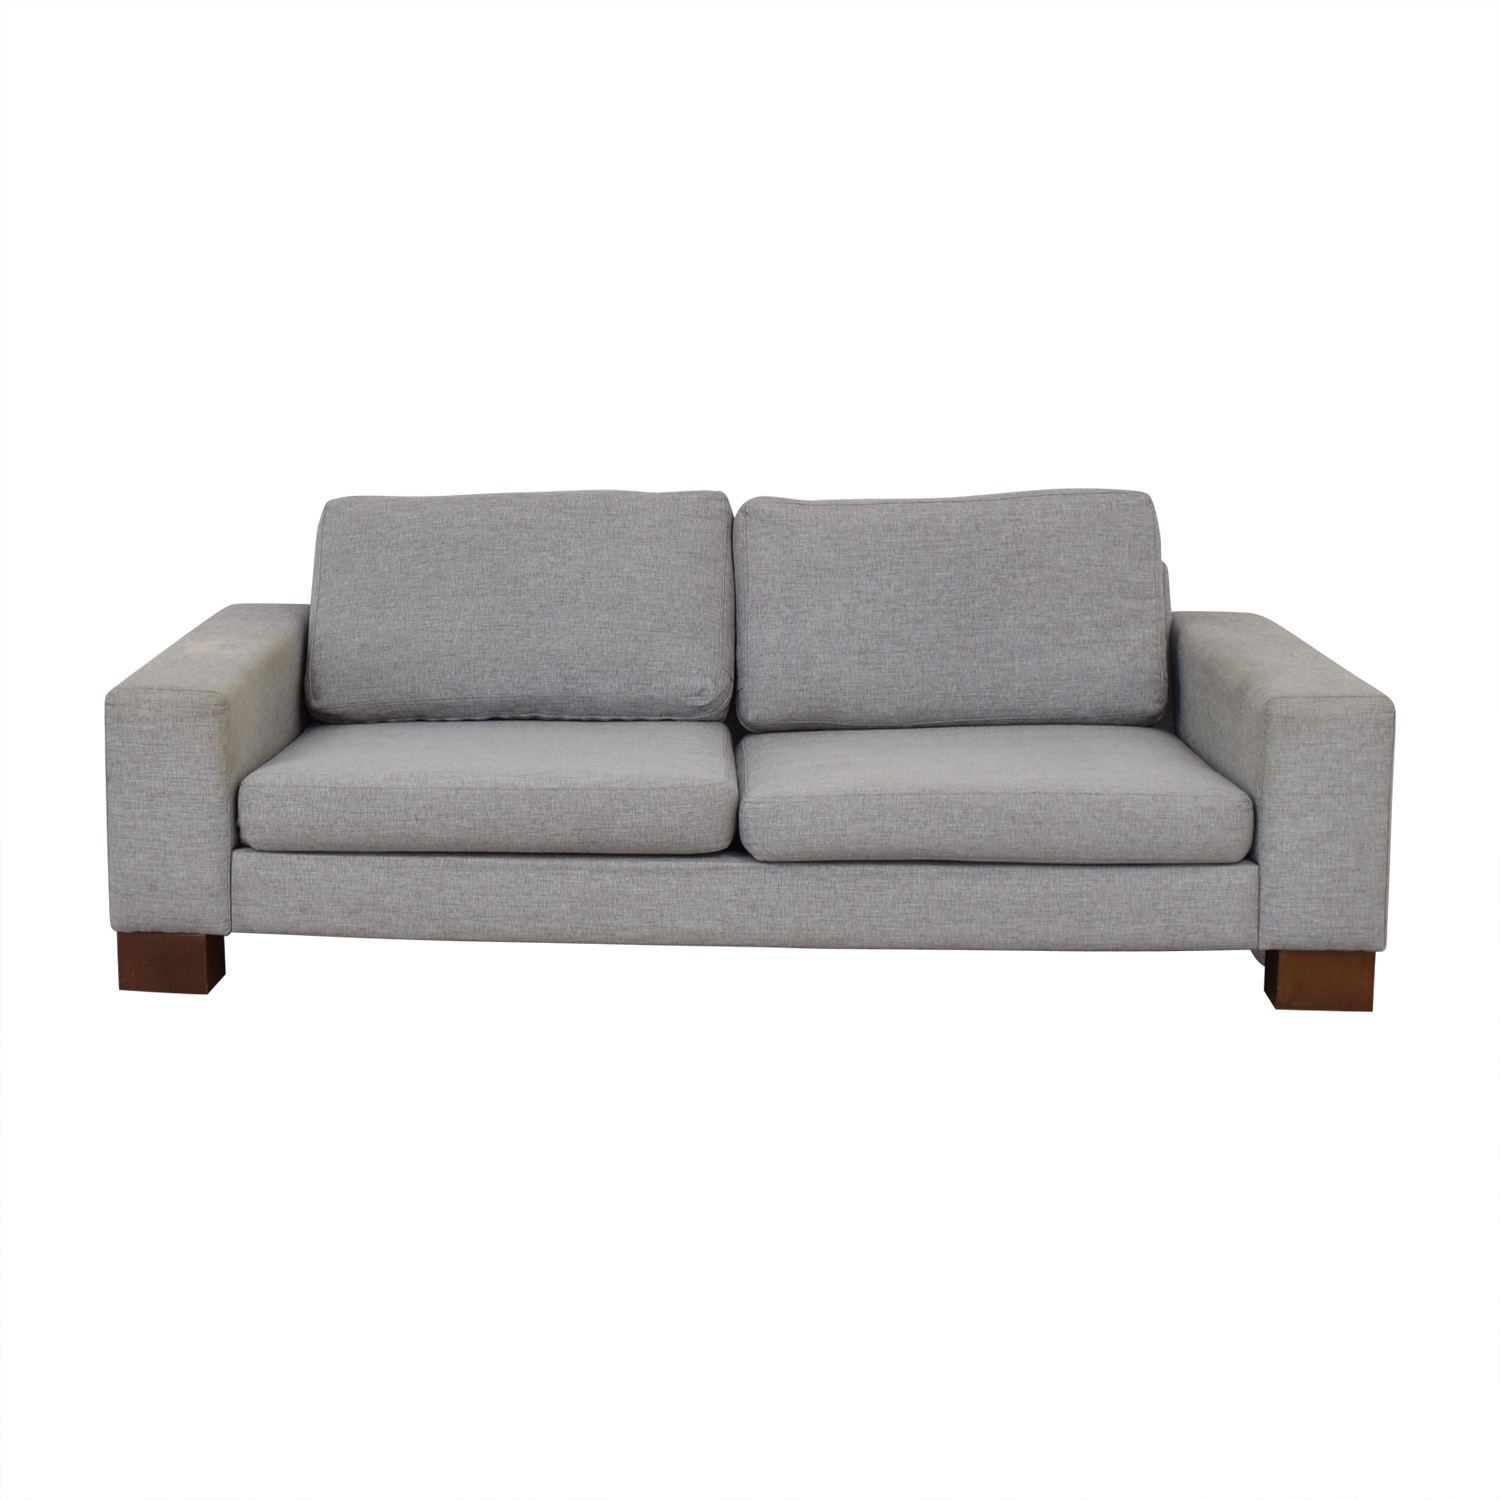 90 Off Boconcept Boconcept Grey Two Cushion Sofa Sofas